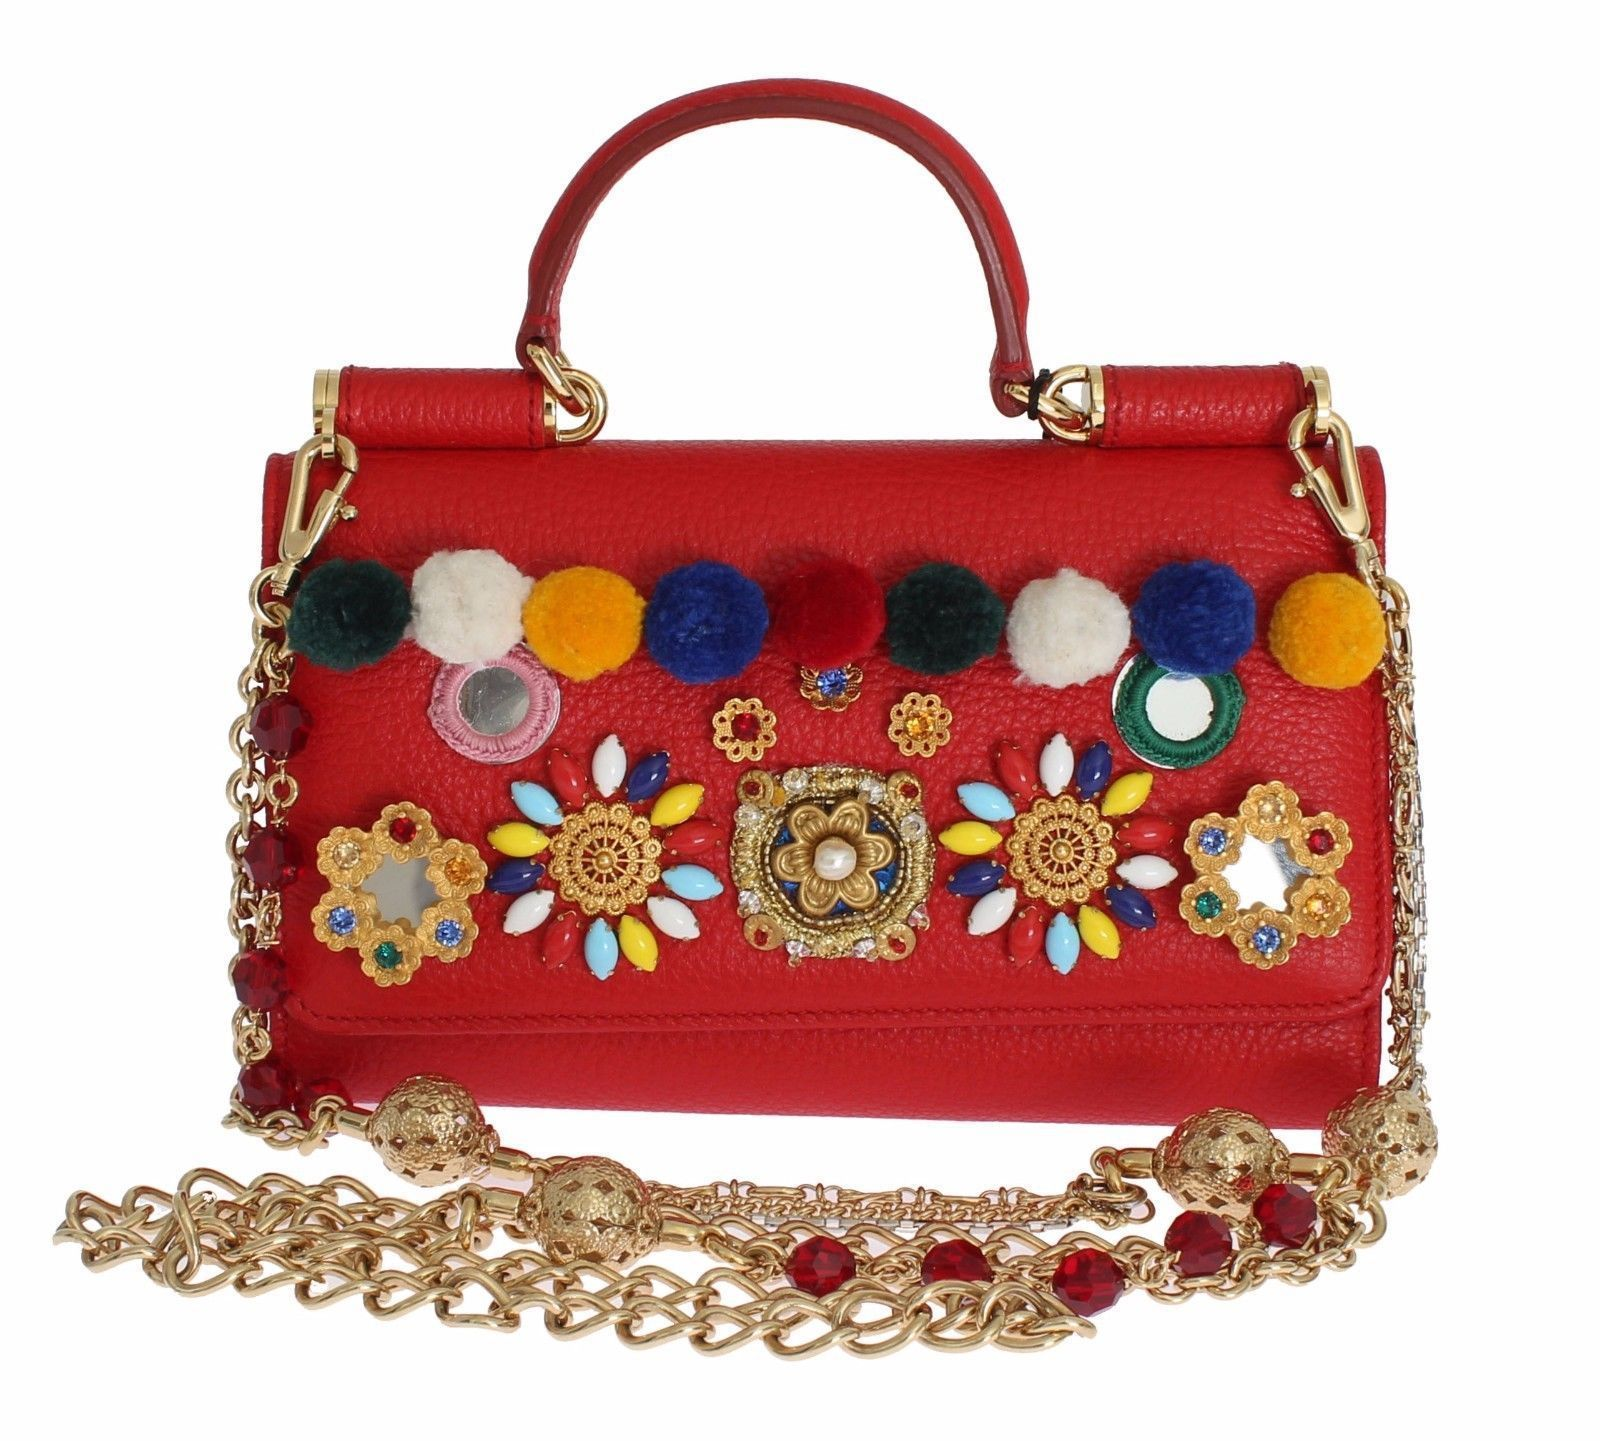 2afb1290dcc8 Dolce   Gabbana Purse Von Red Leather Crystal Carretto Pom Pom ...